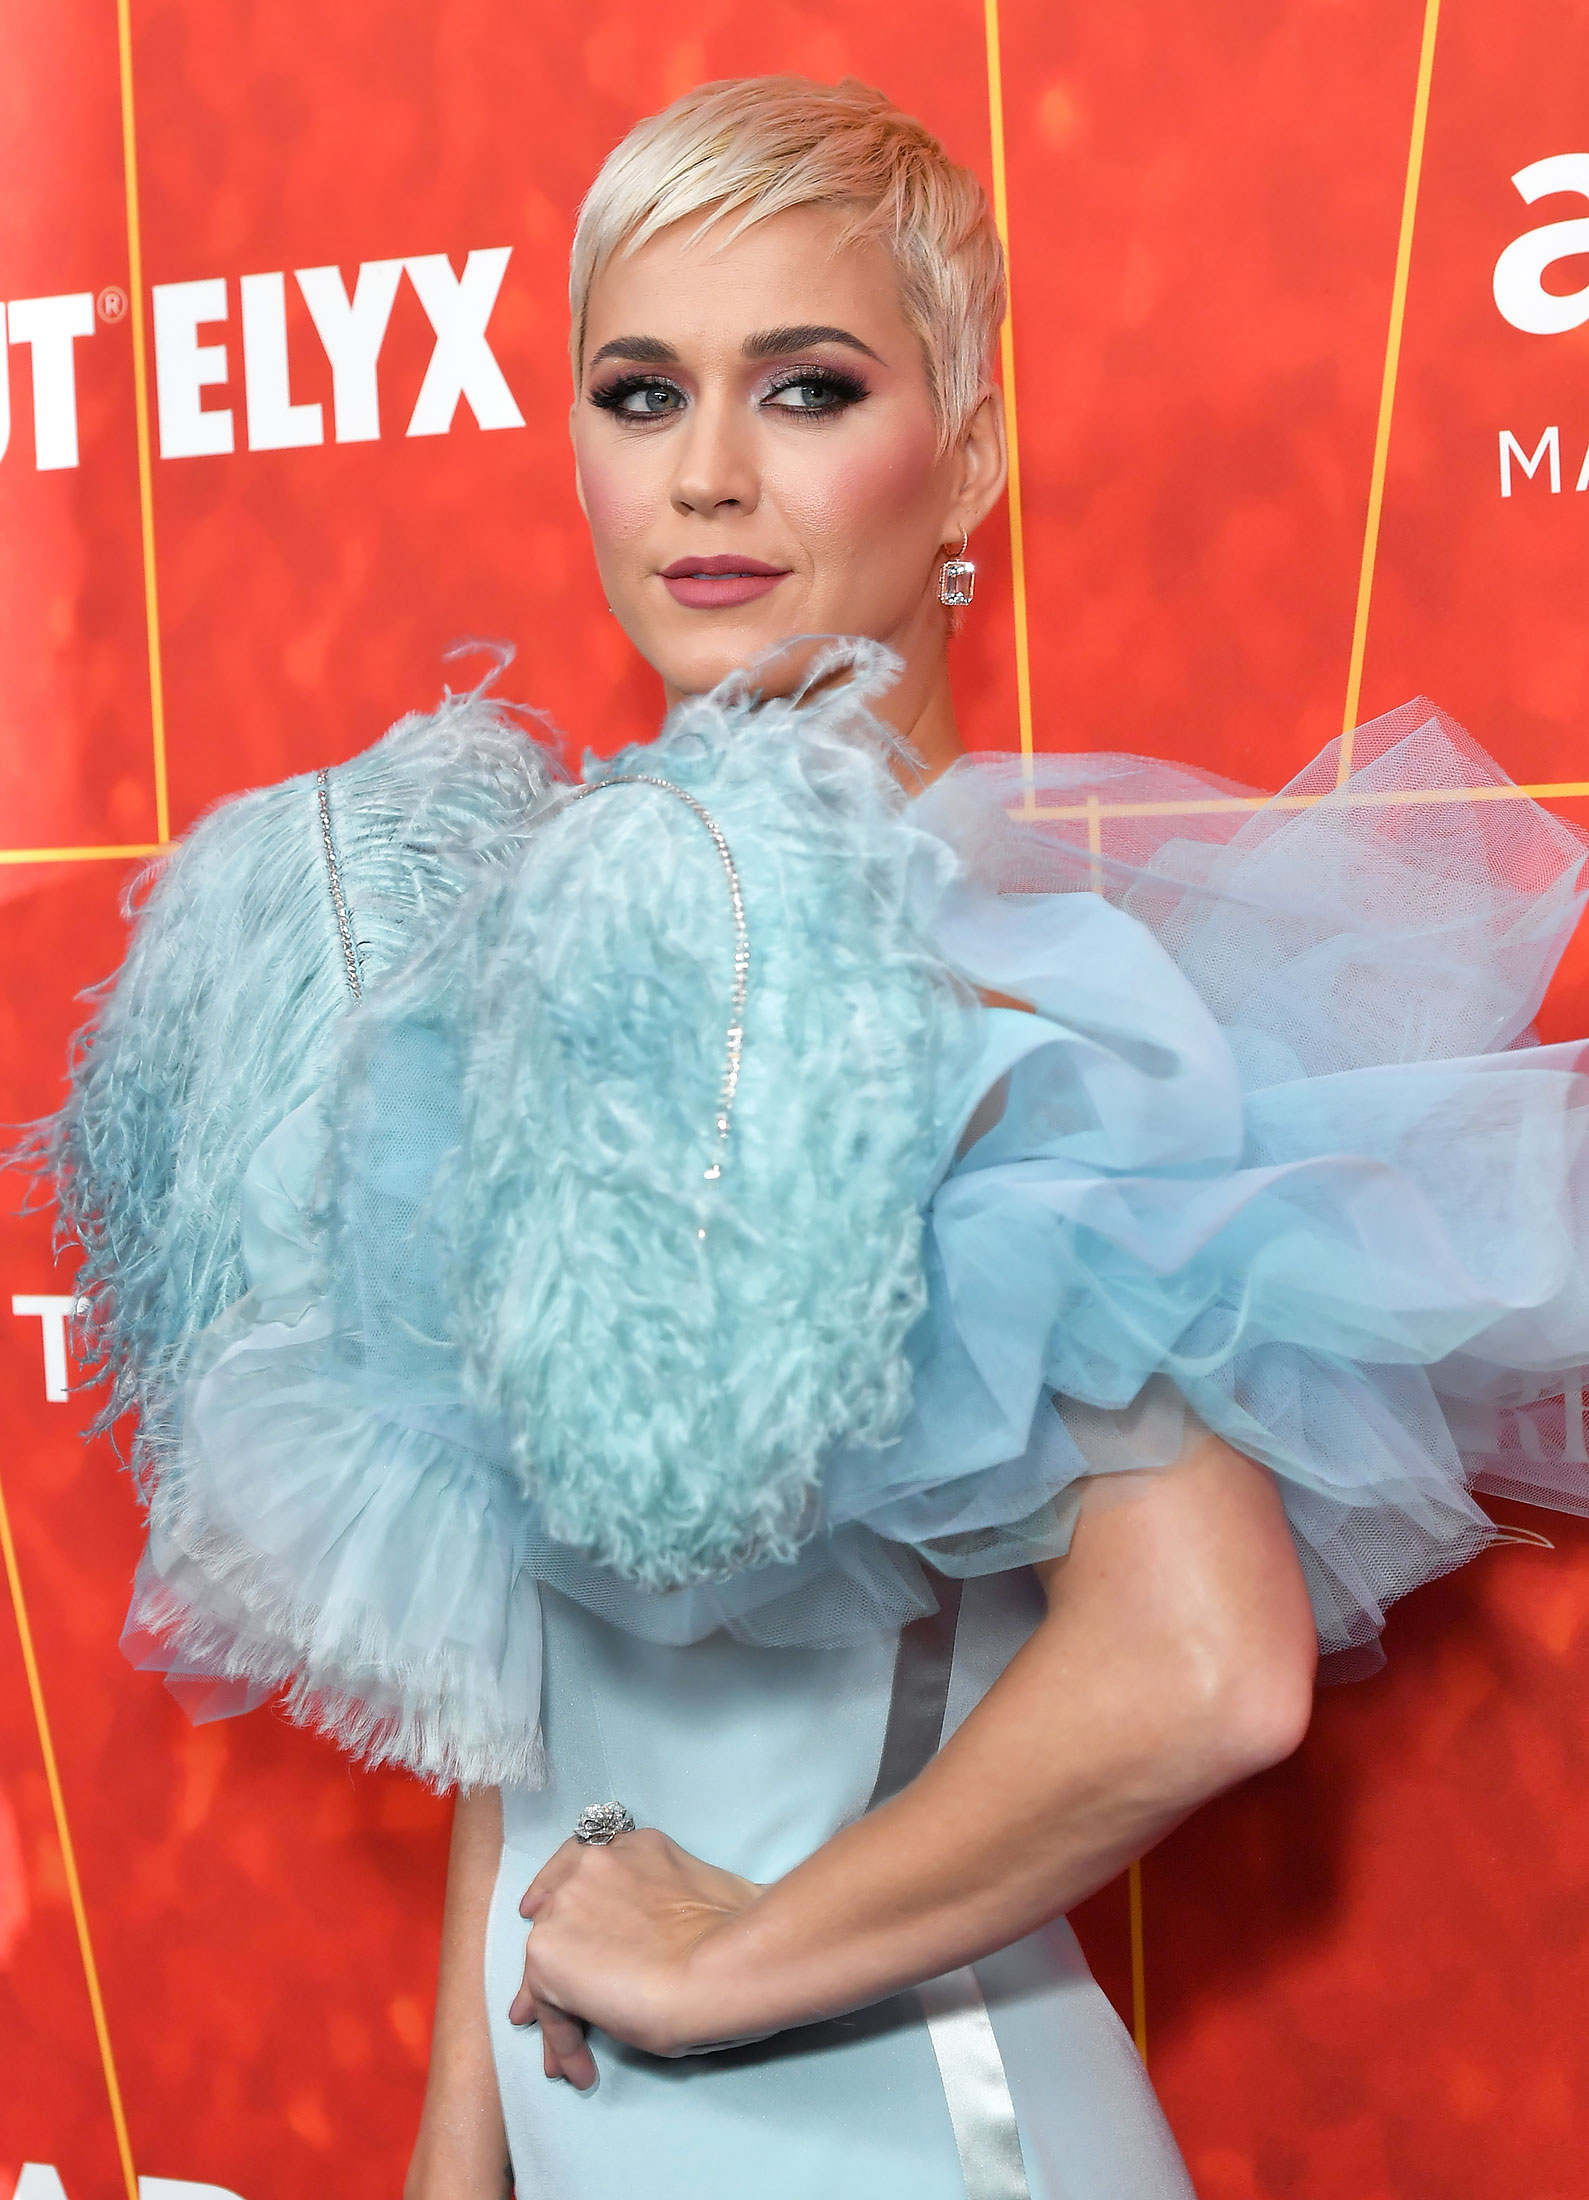 Katy Perry Is Saving Her Most Iconic Clothes for Daughter Daisy